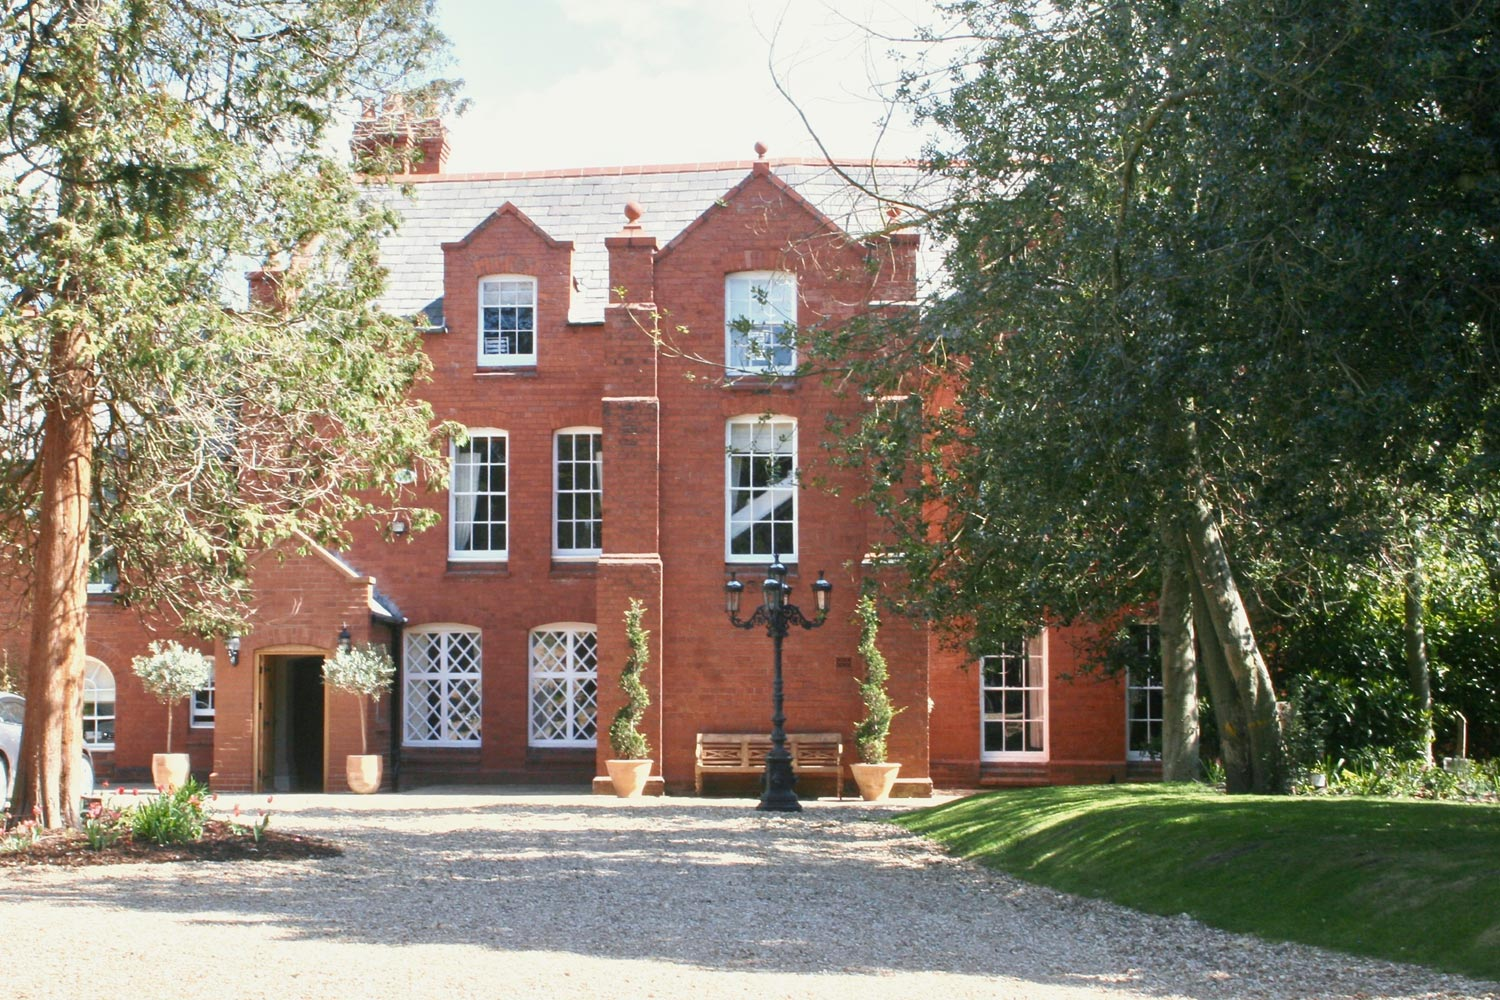 The Old Hall, Christleton